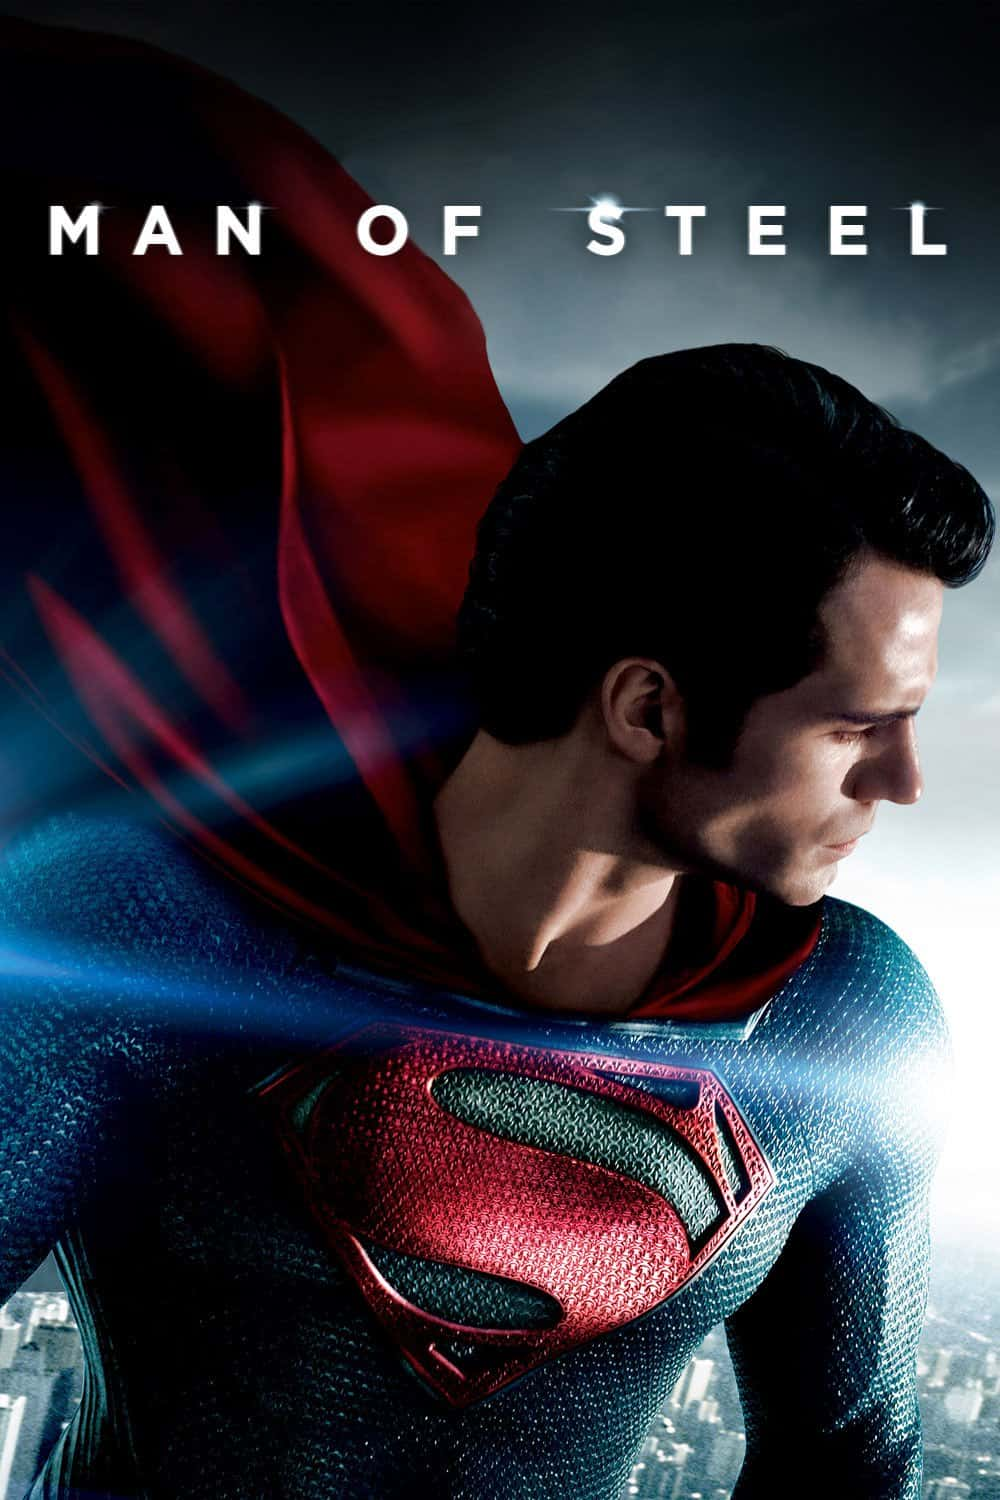 Man of Steel, 2013